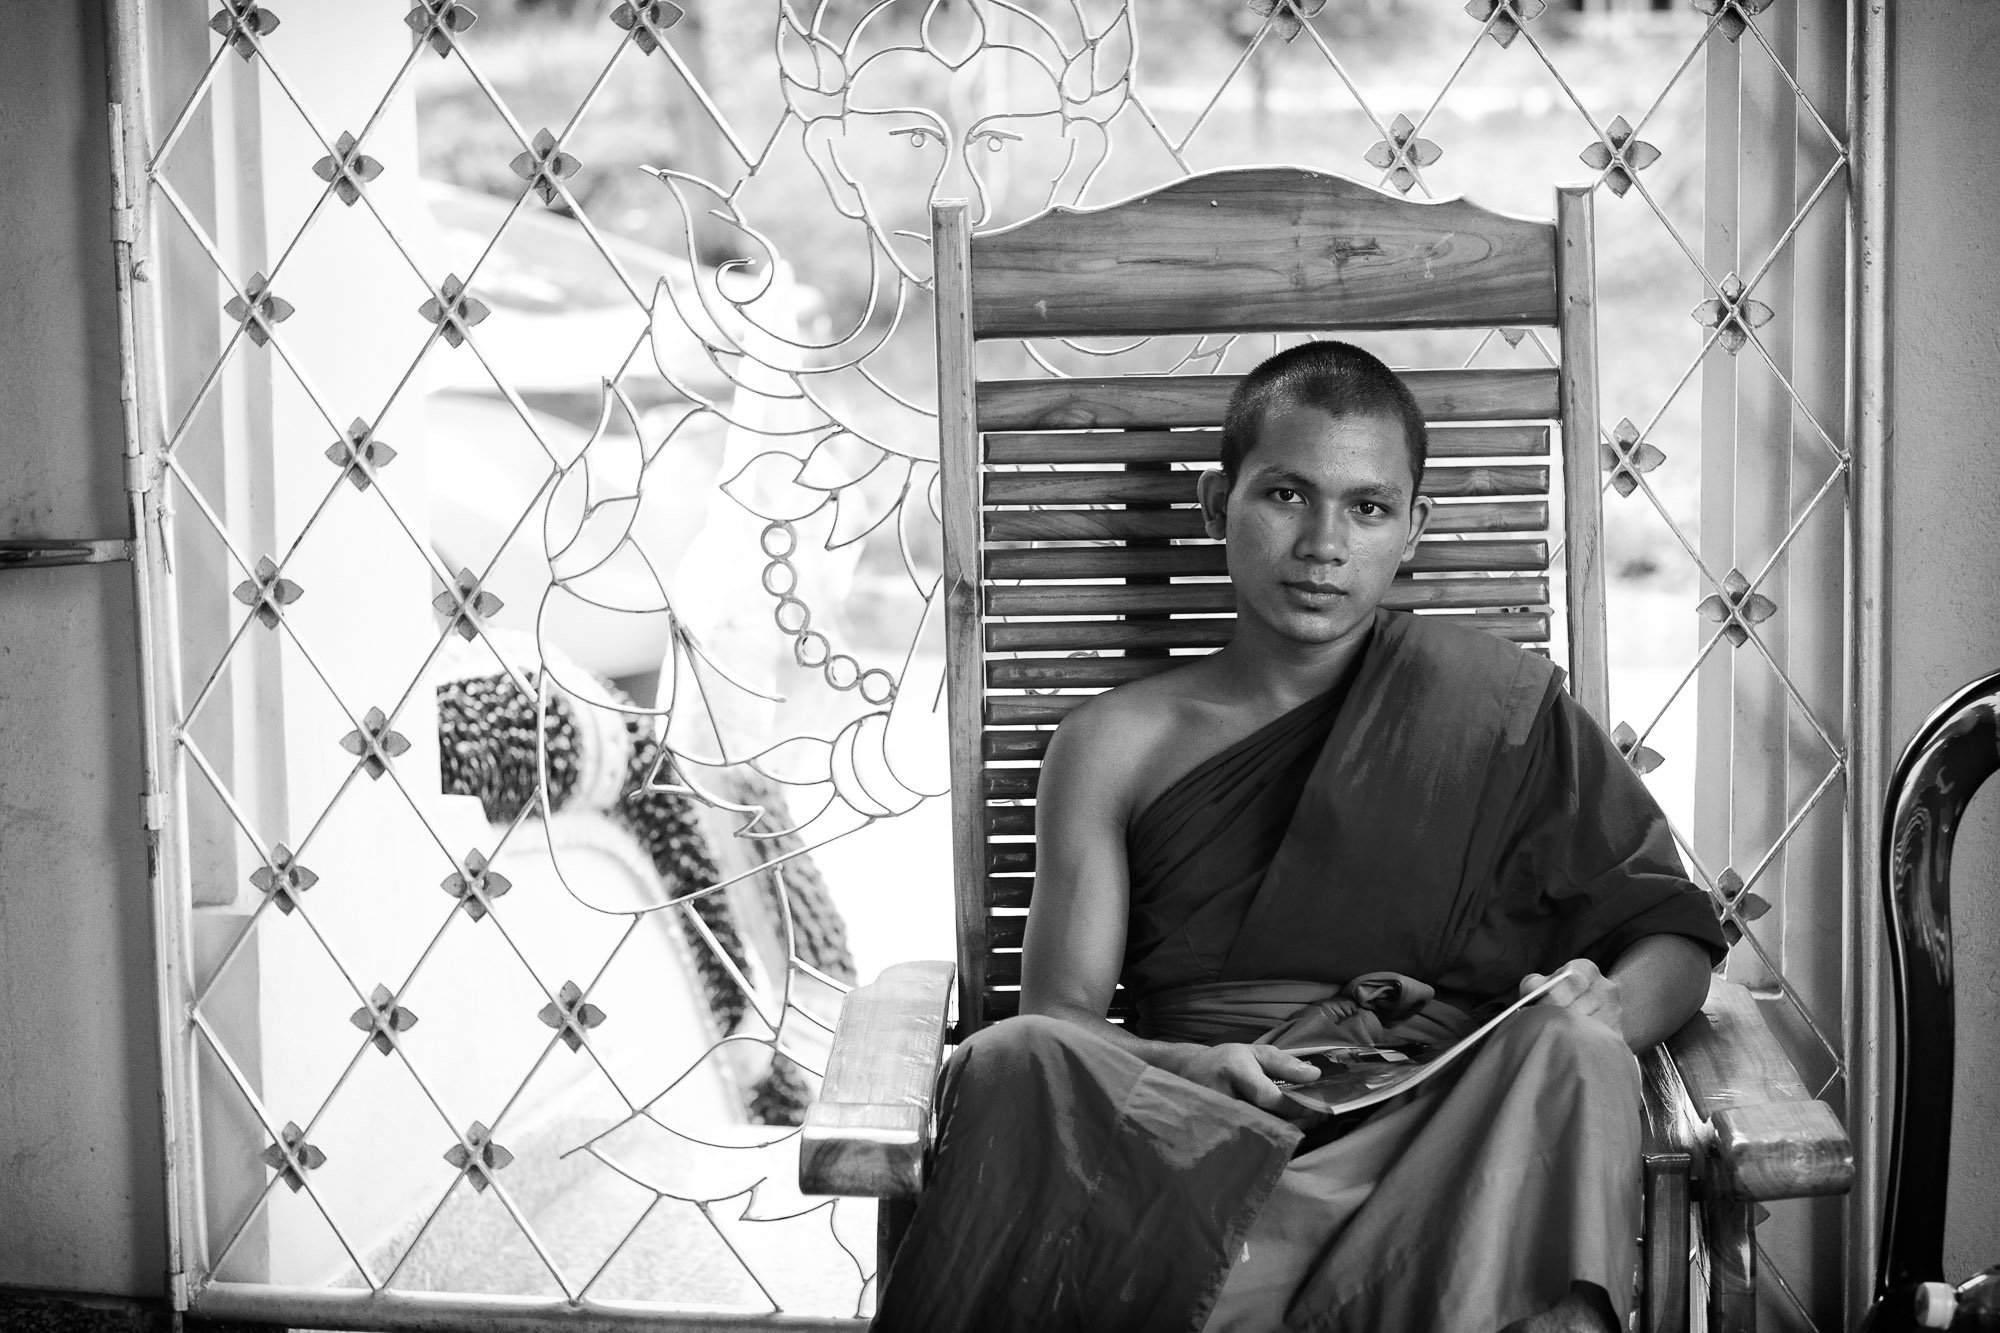 buddhist VIENTIANE Laos asia street photography photographer monk